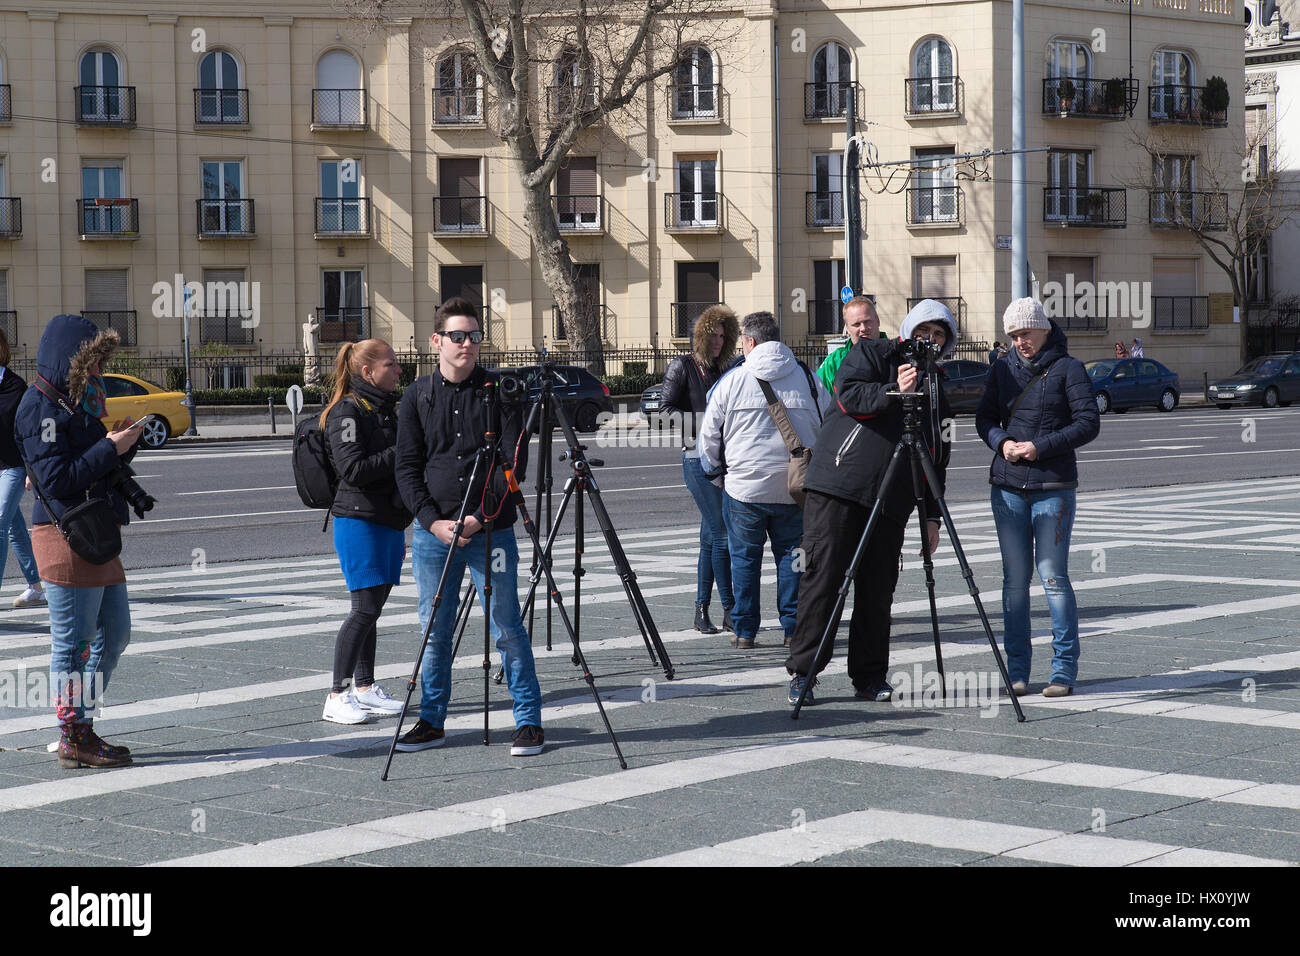 A group of young people with cameras on tripods Heroes Square in Budapest Hungary - Stock Image